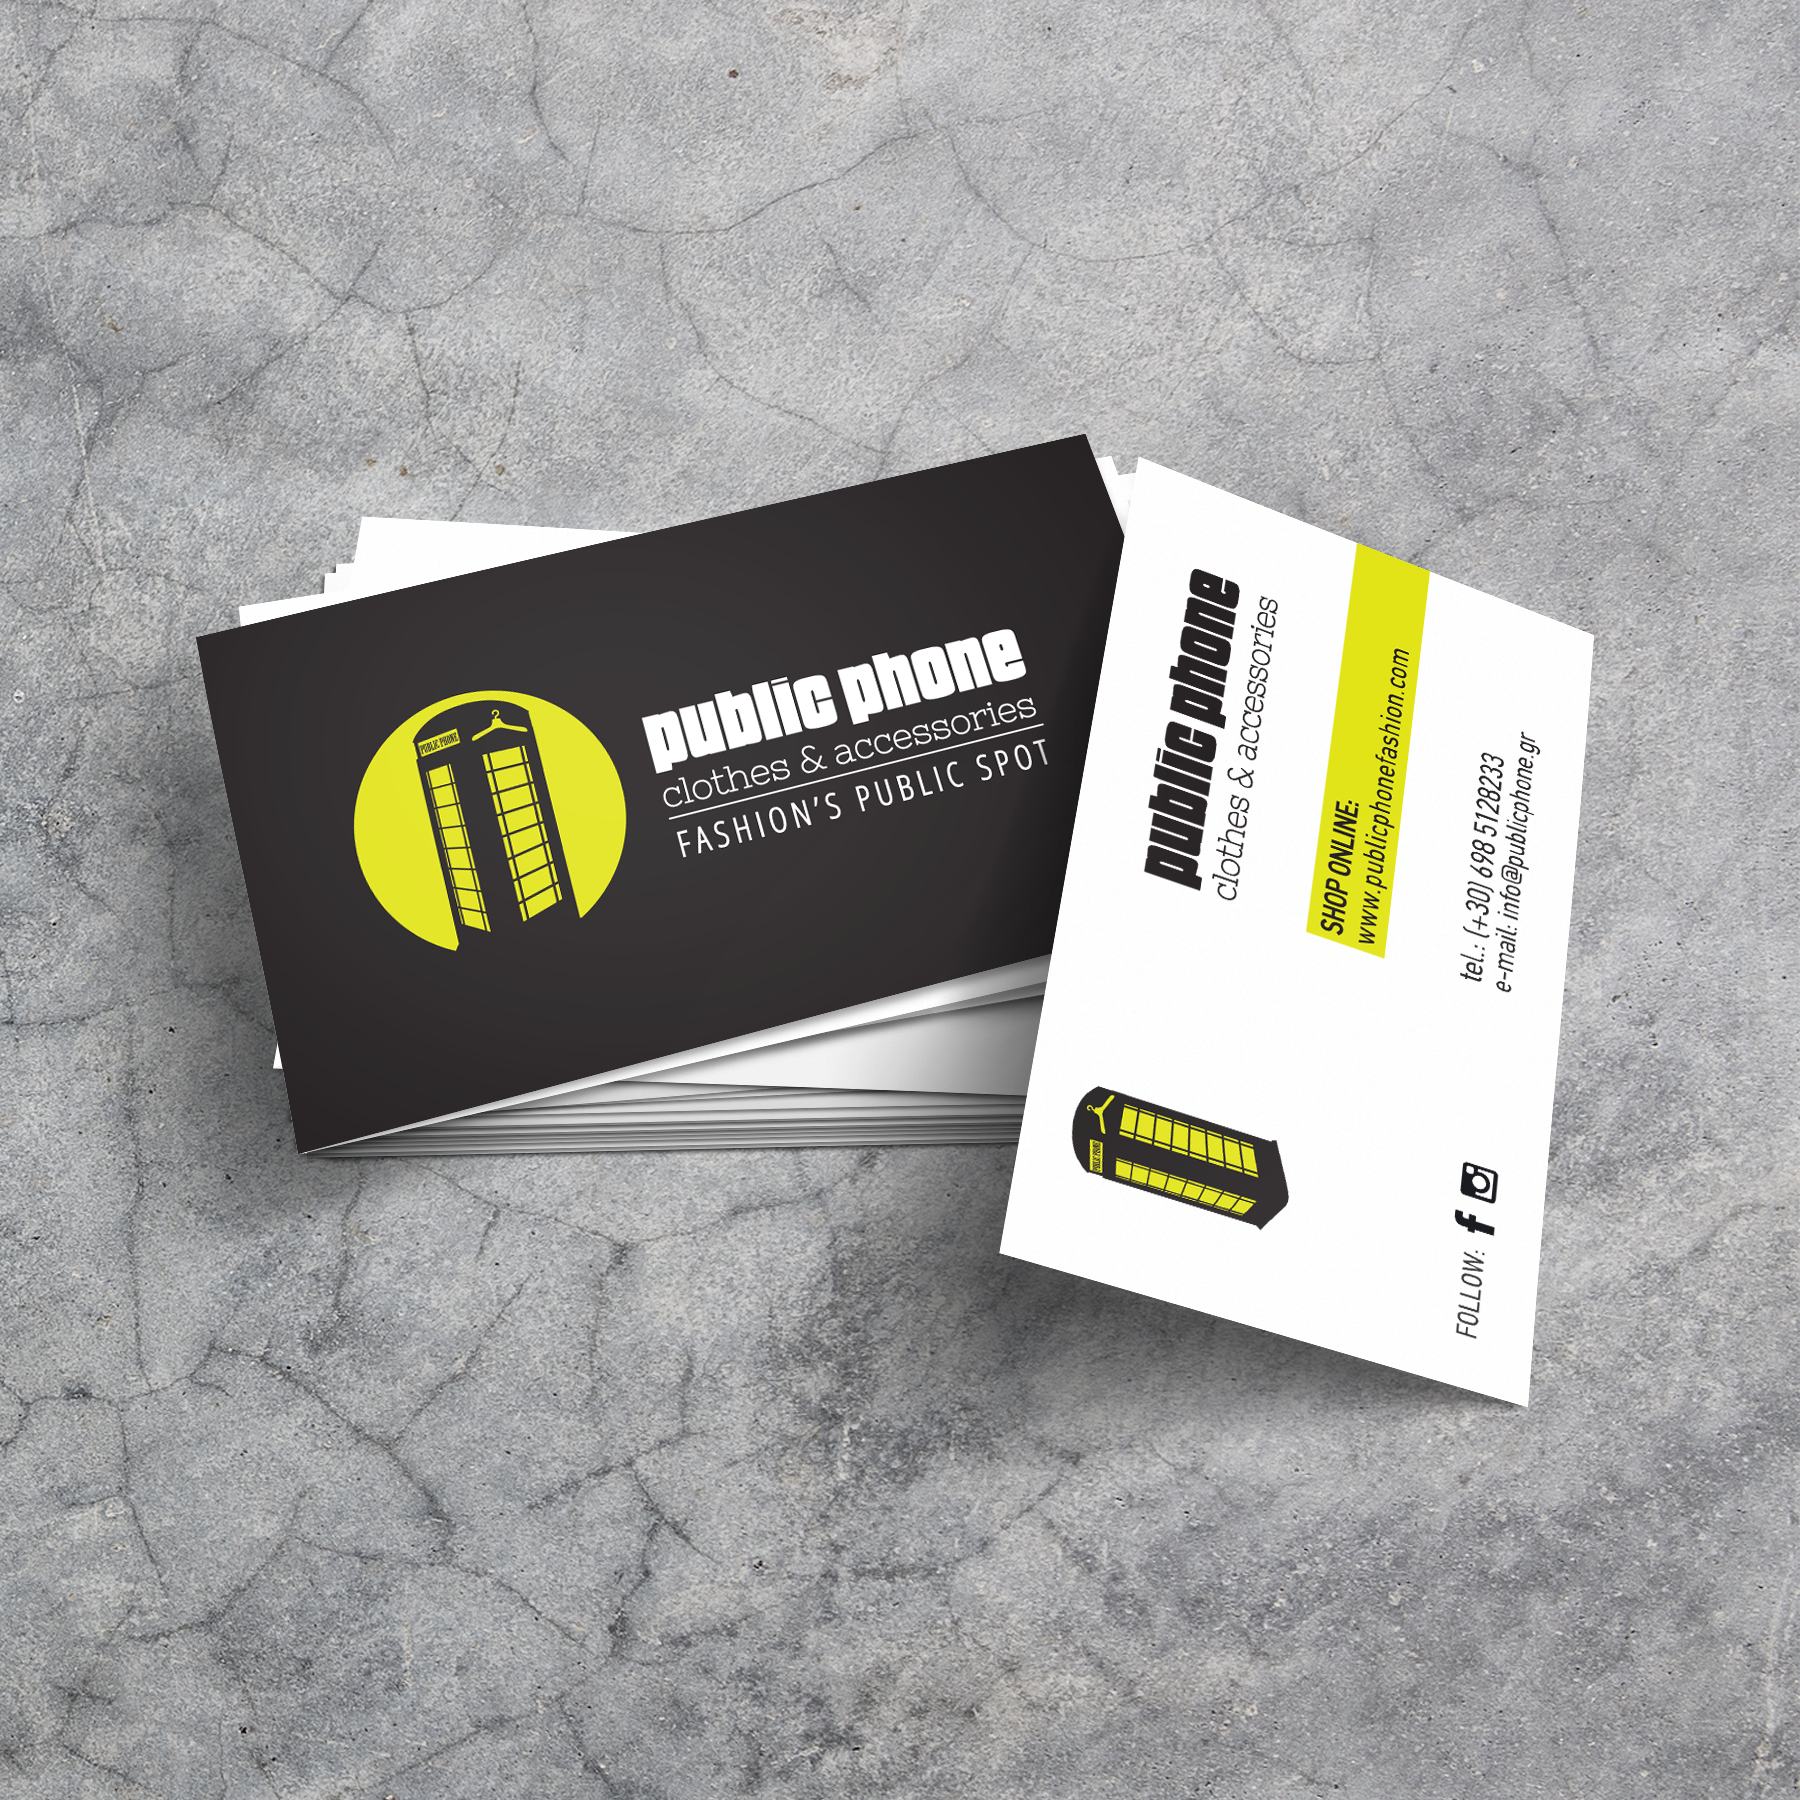 Public Phone fashion business cards